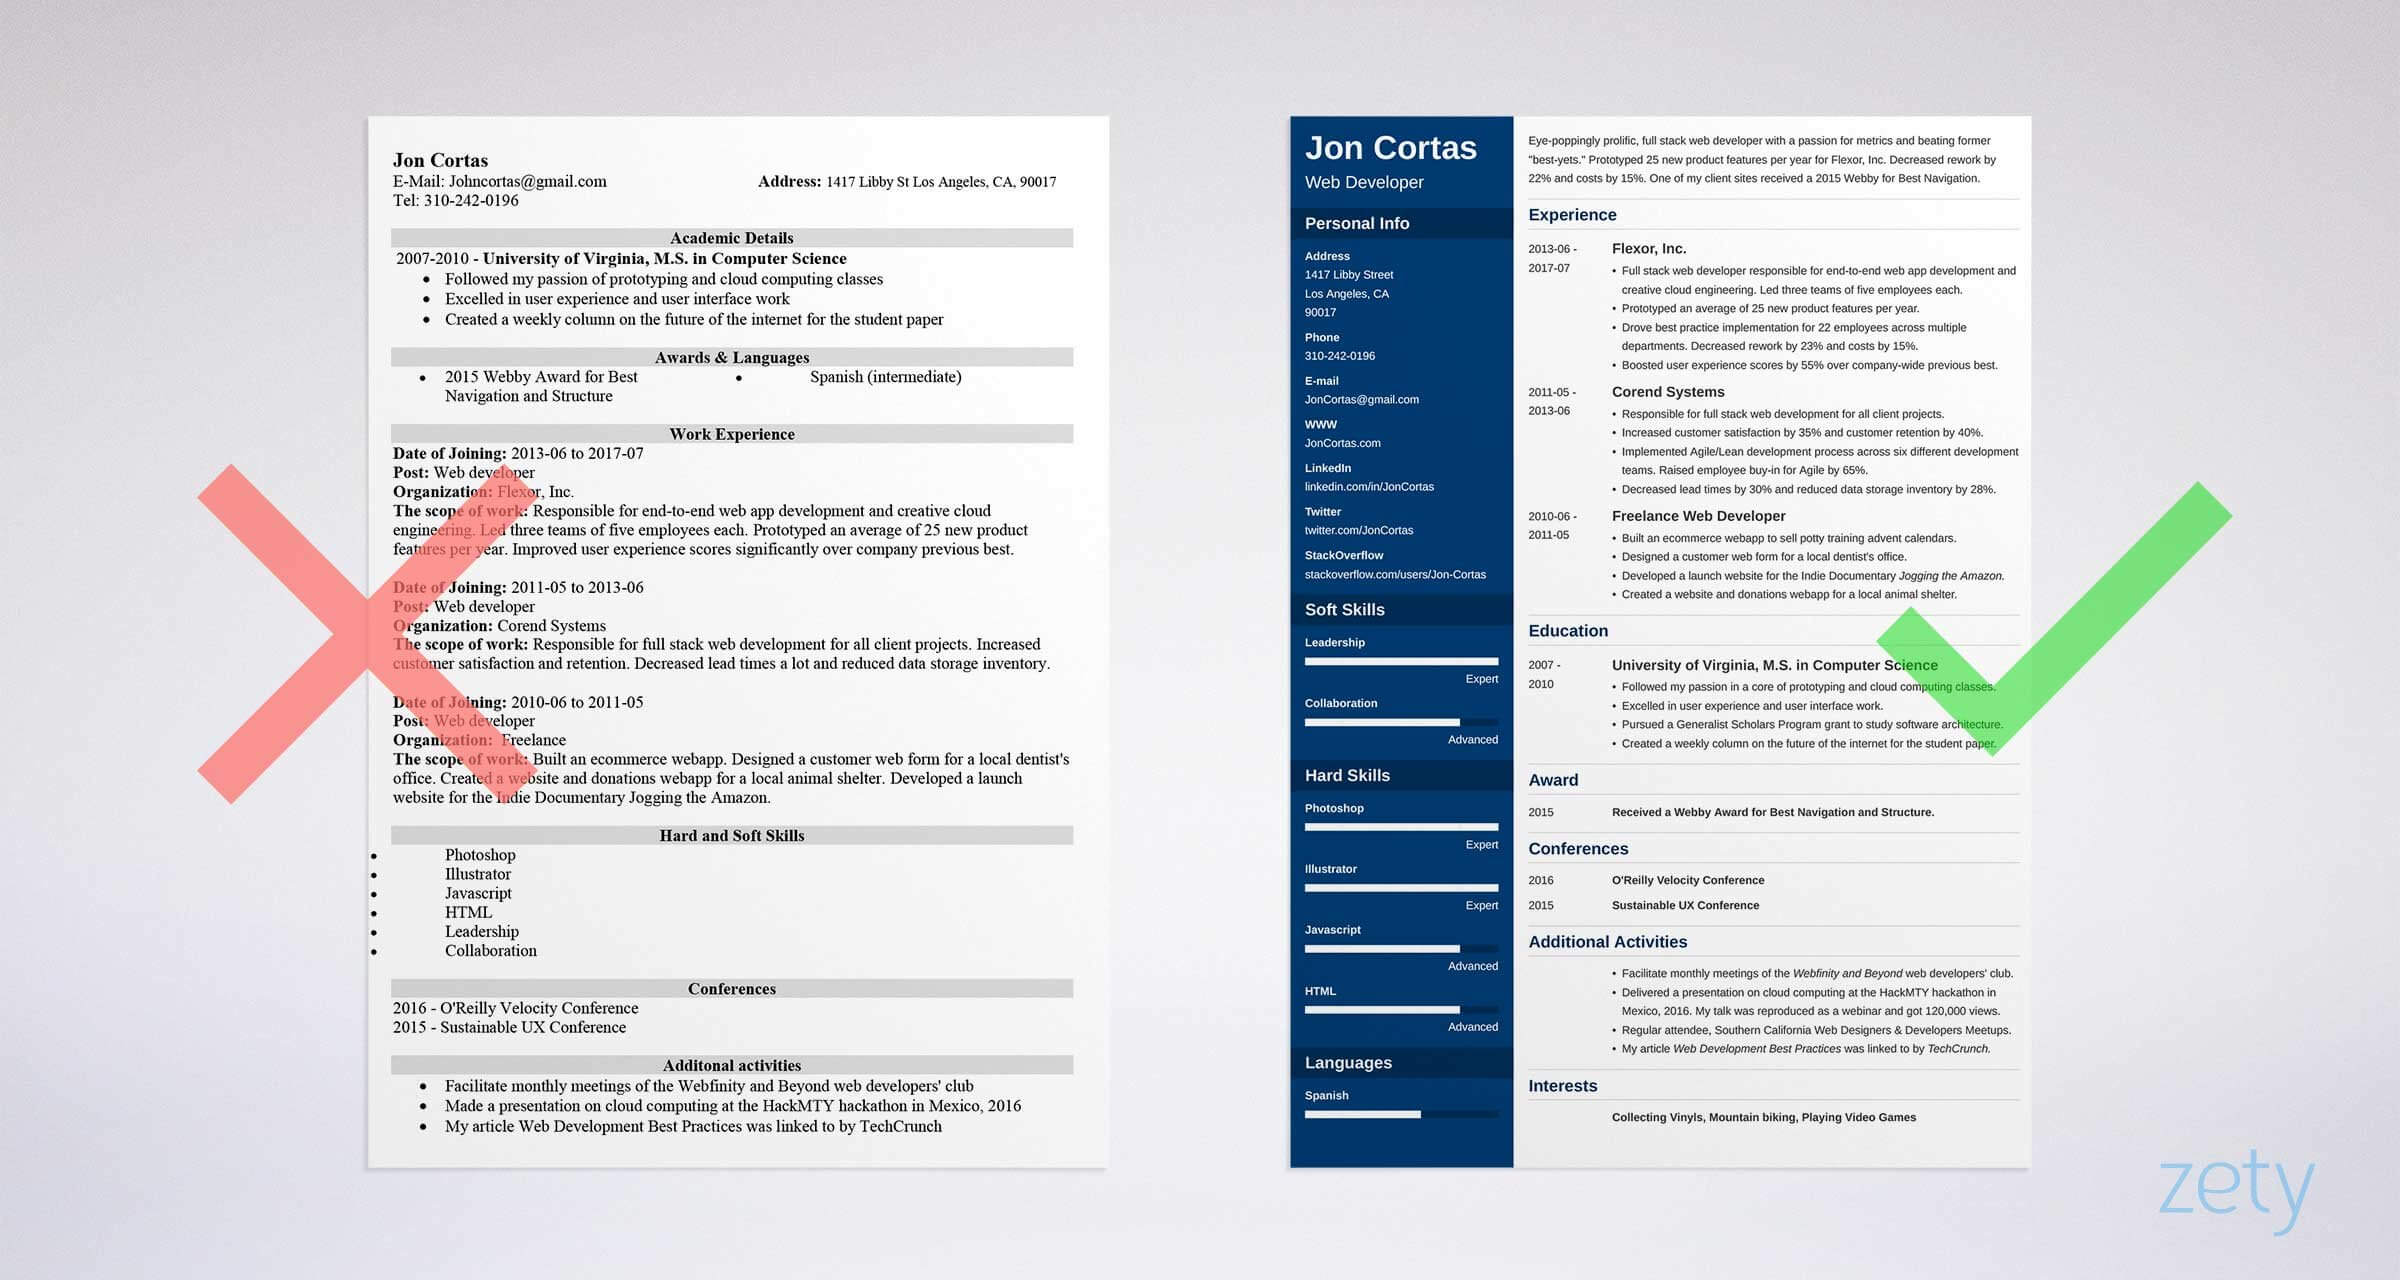 15+ Resume Templates For Microsoft Word [Free Download] Pertaining To Resume Templates Word 2010